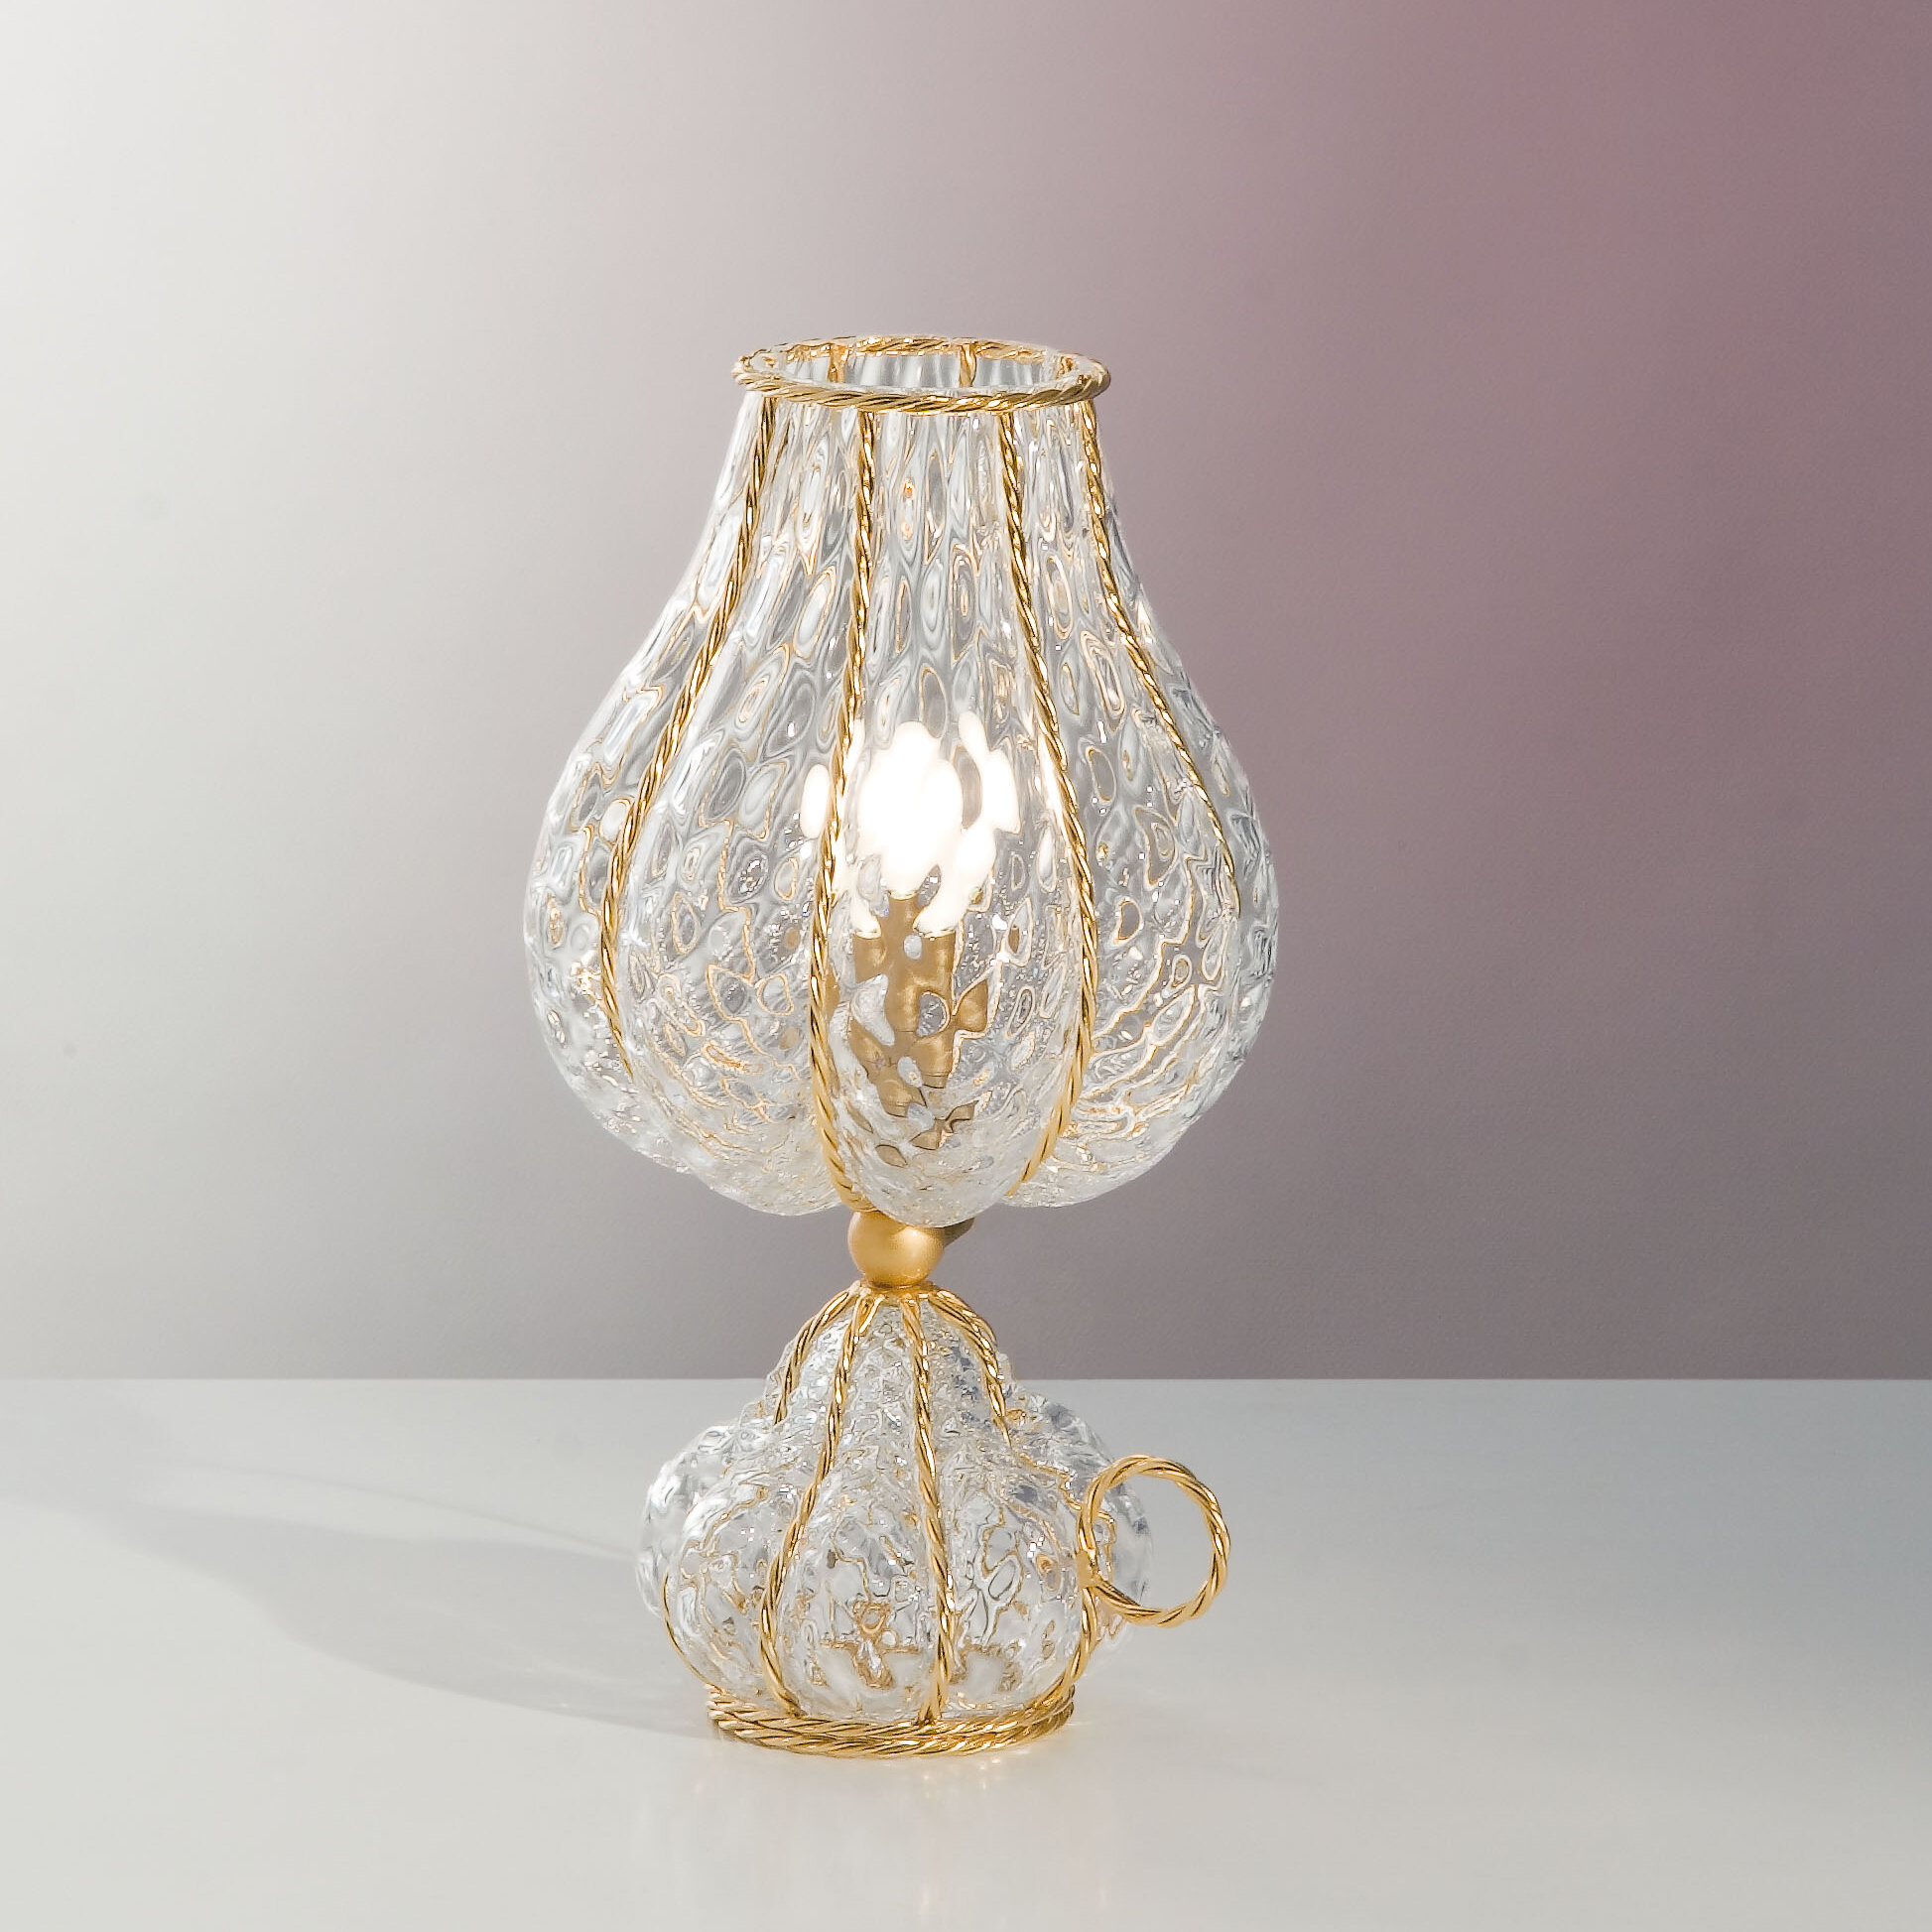 Siru-Vecchia-Murano-1-Light-Table-Lamp